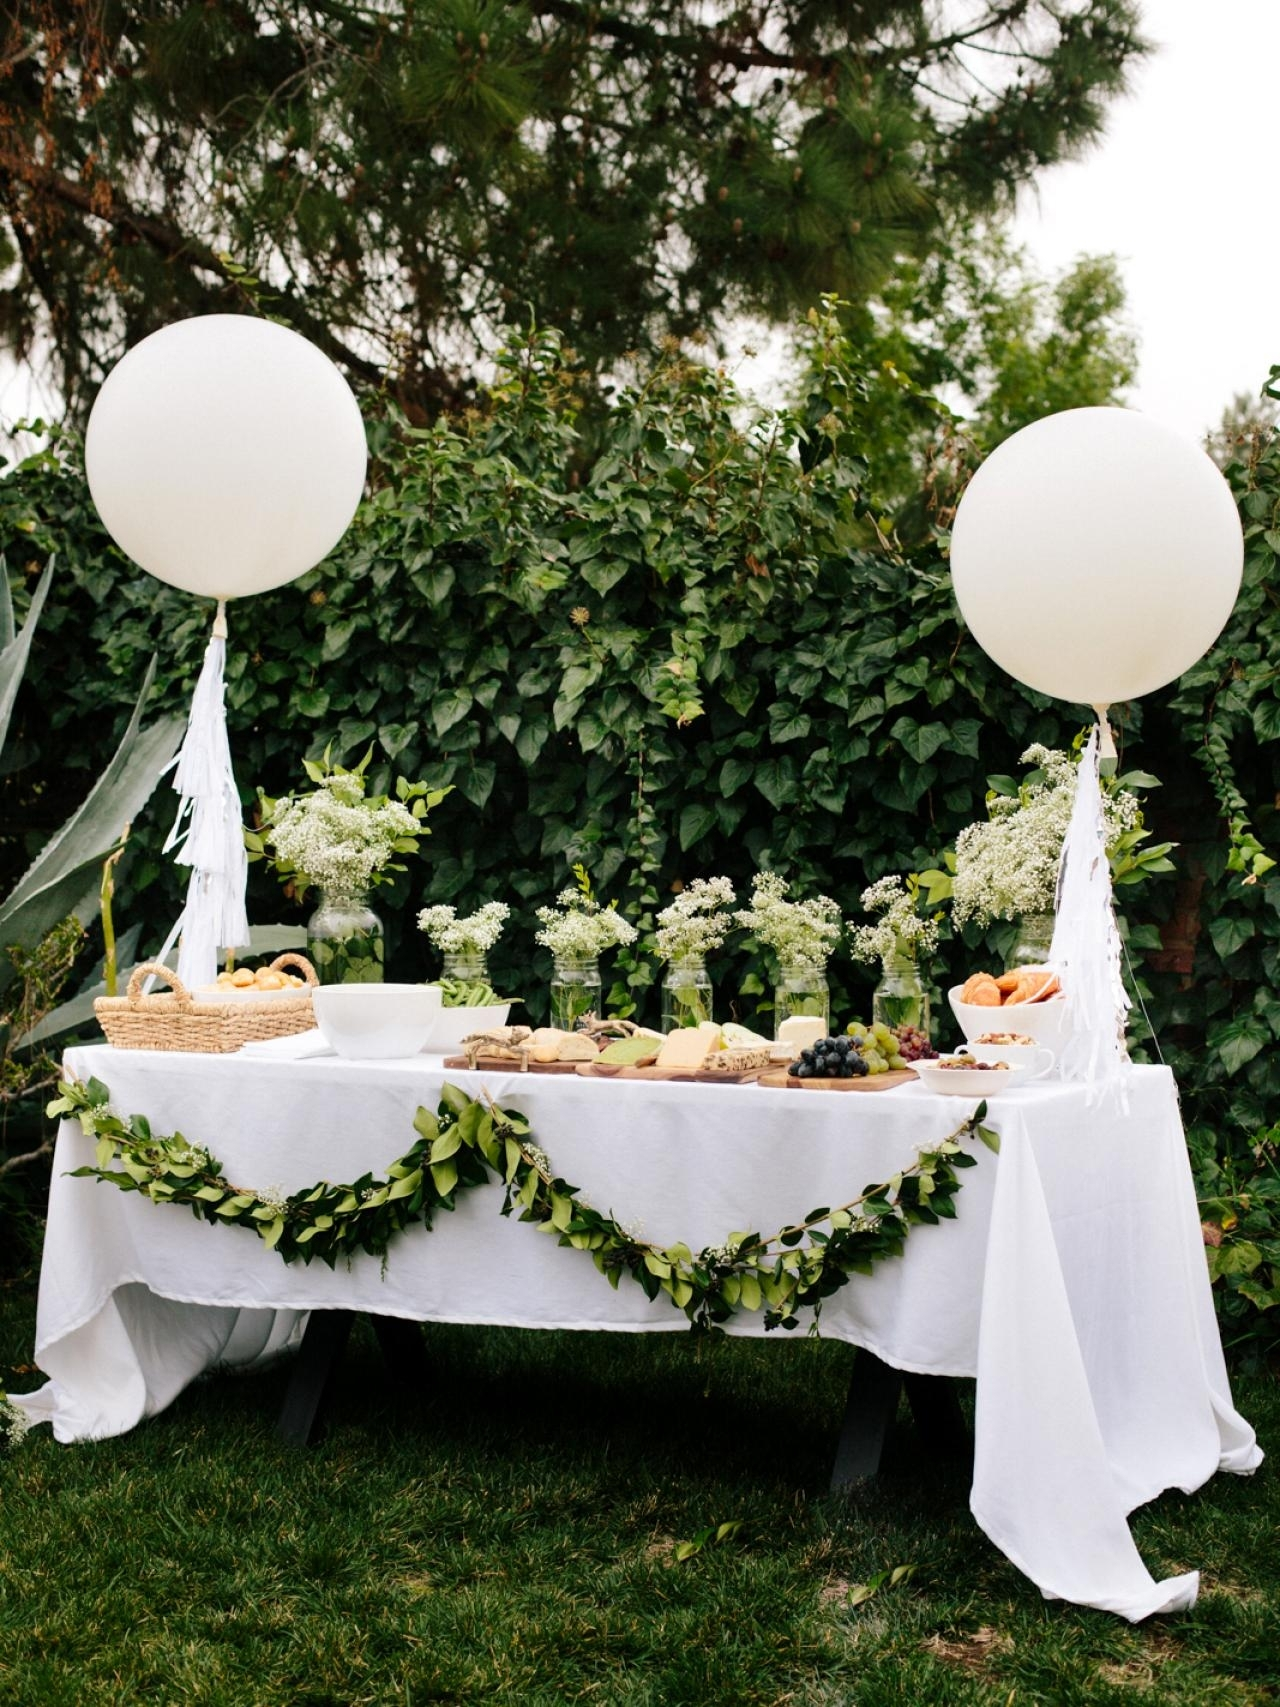 10 Amazing All White Baby Shower Ideas %name 2020